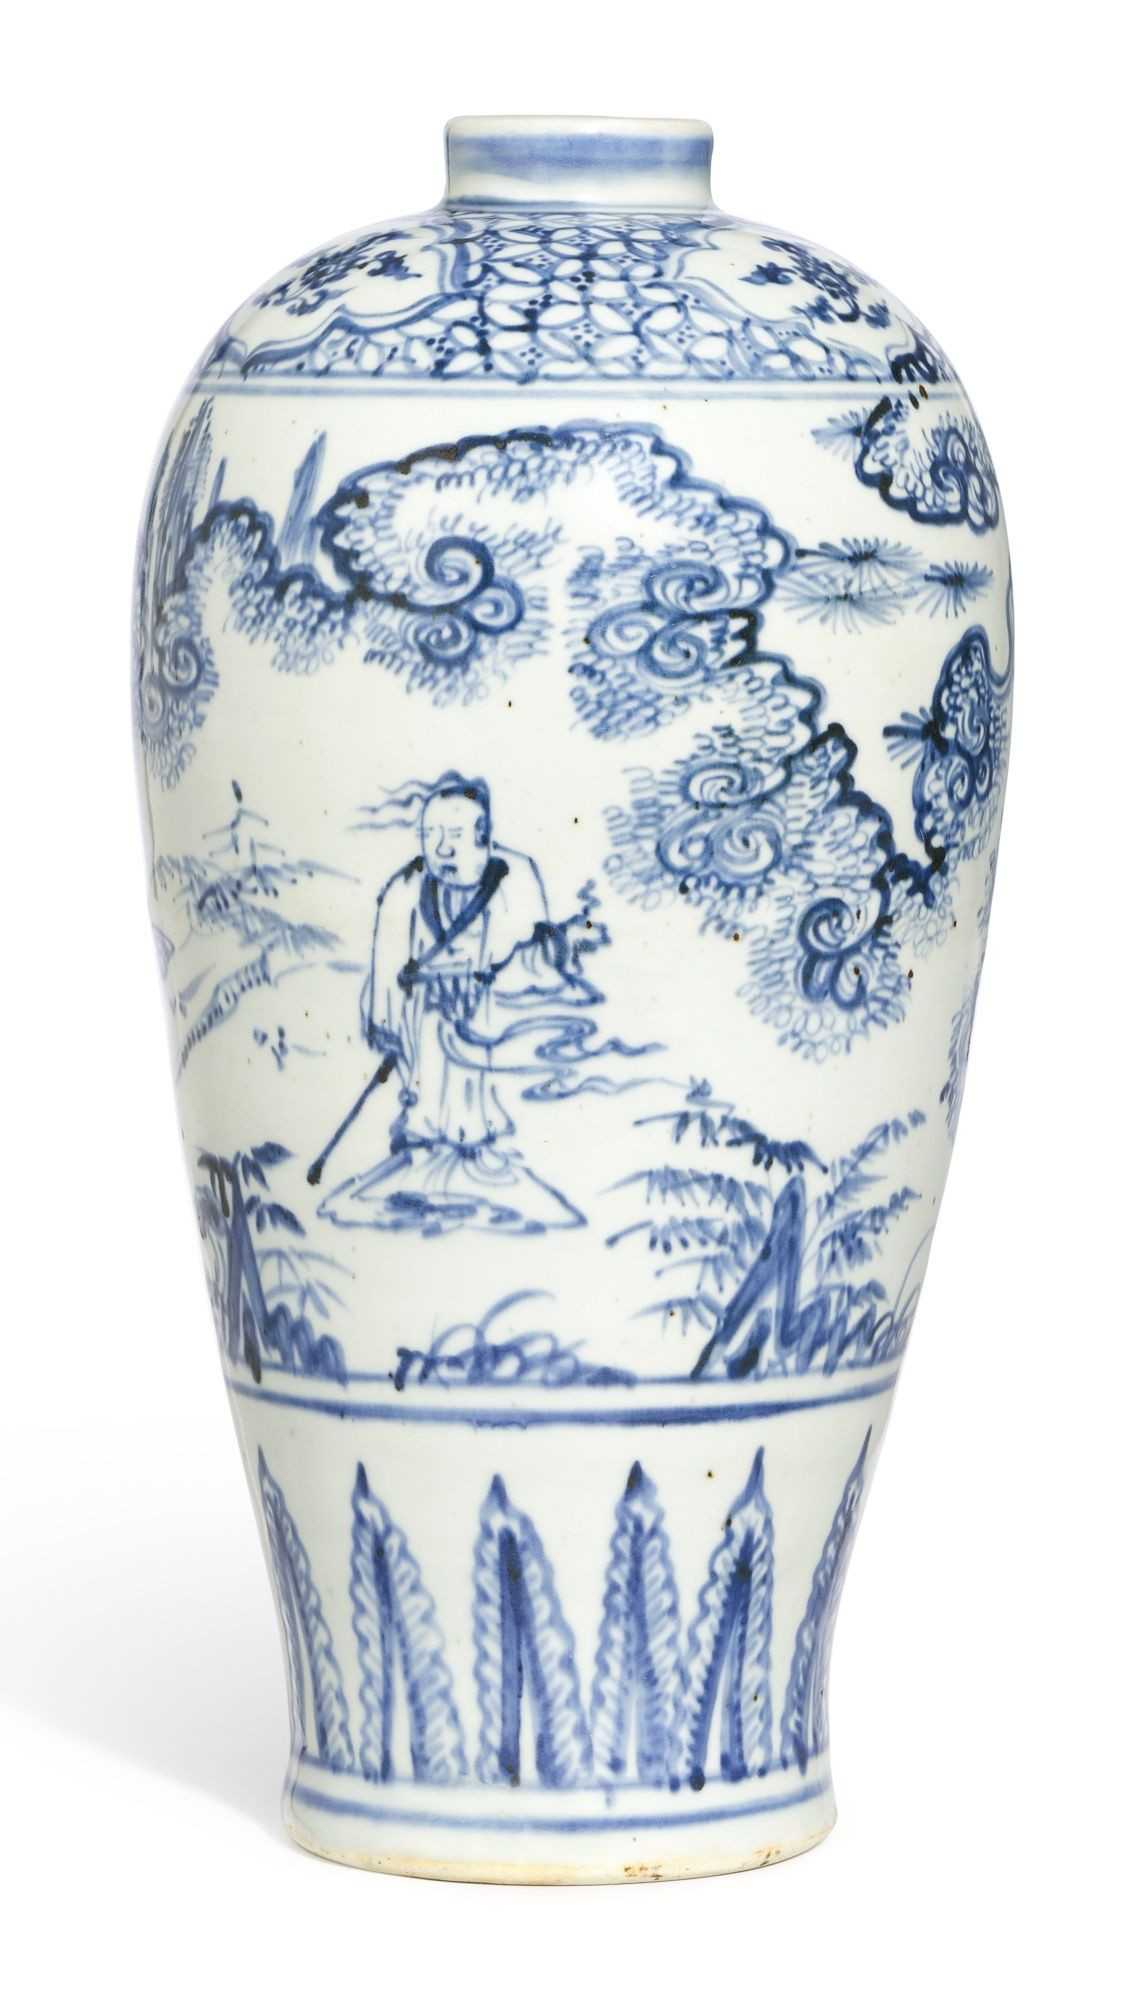 contemporary white ceramic vases of a blue and white figure meipingming dynasty 15th century for a blue and white figure meipingming dynasty 15th century